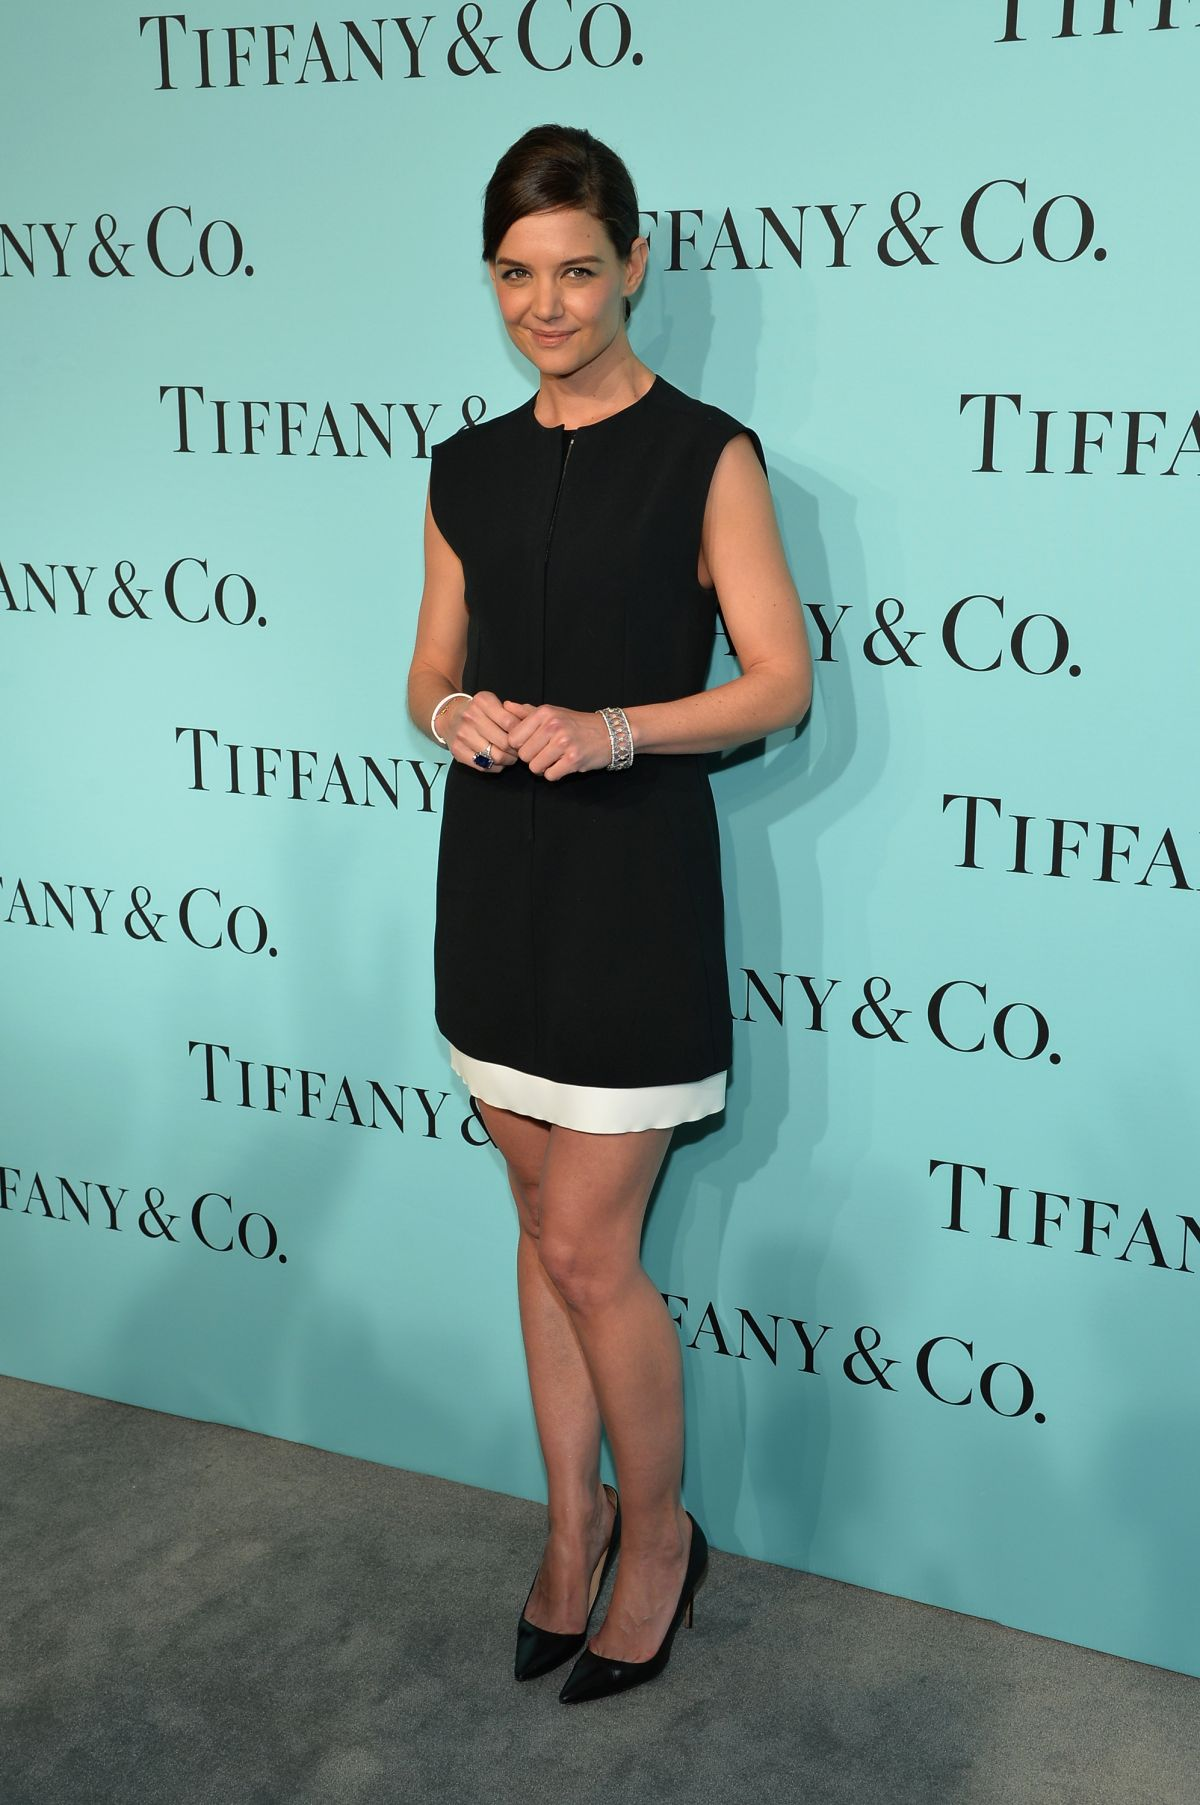 KATIE HOLMES at Tiffany Debut of 2014 Blue Book in New York